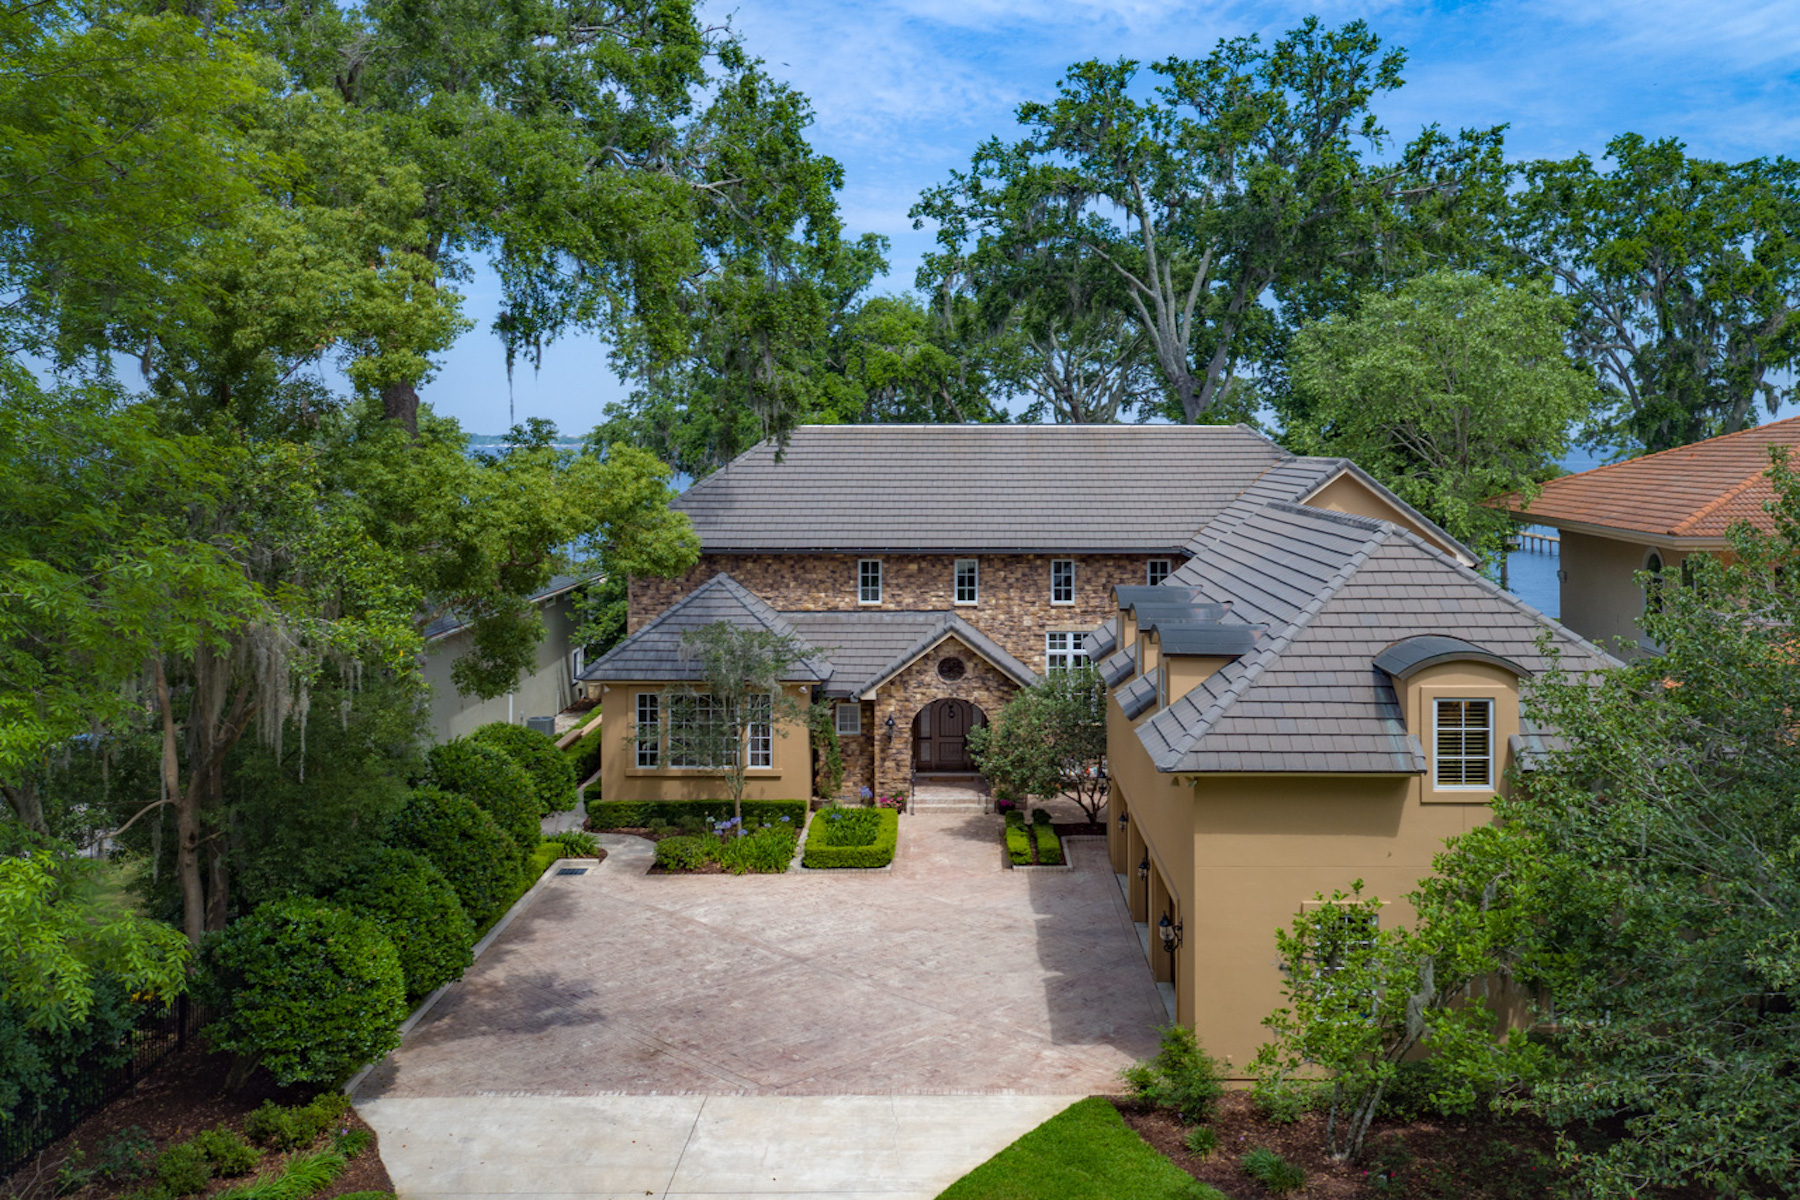 House for Sale at Exceptional Riverfront Home 2823 Forest Circle Jacksonville, Florida 32257 United States